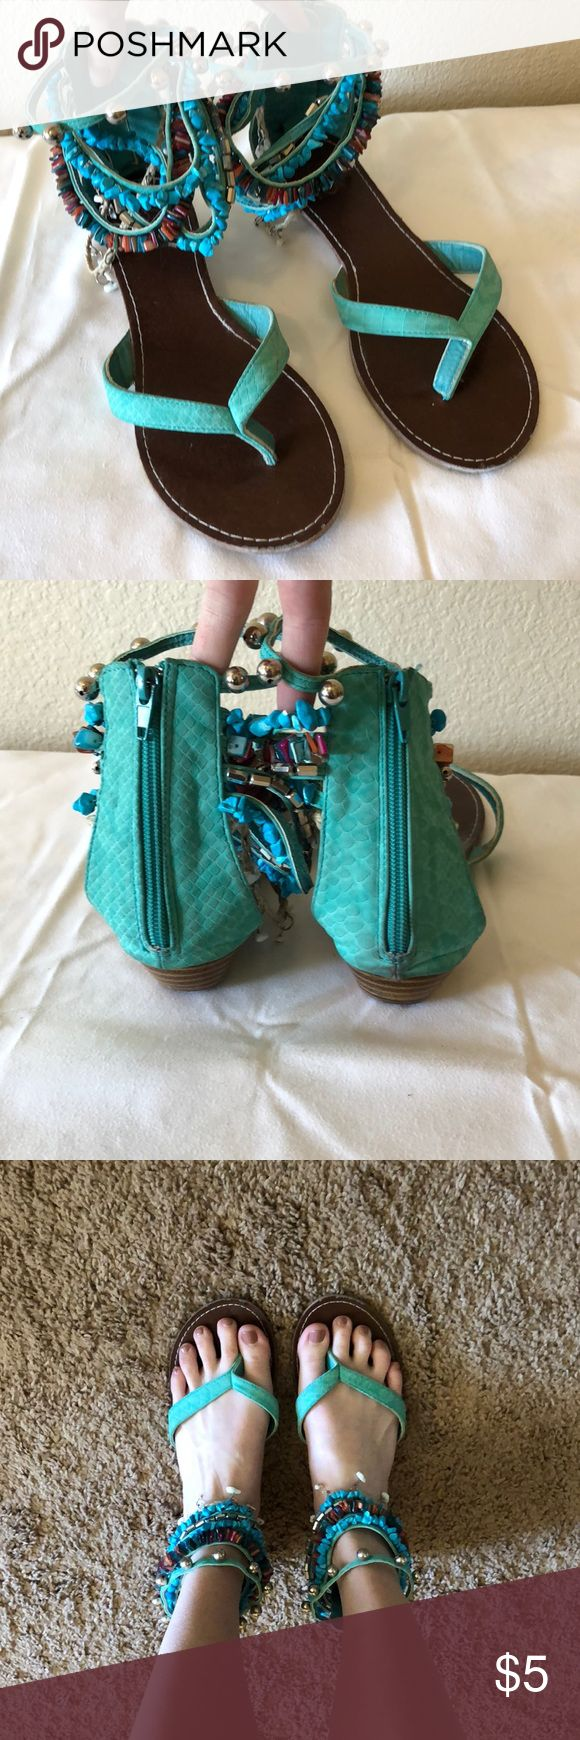 Teal ankle wrap sandals Teal sandals, zip close in back. Size not indicated on shoes, but are size 8. Gently worn. 385 Fifth Shoes Sandals